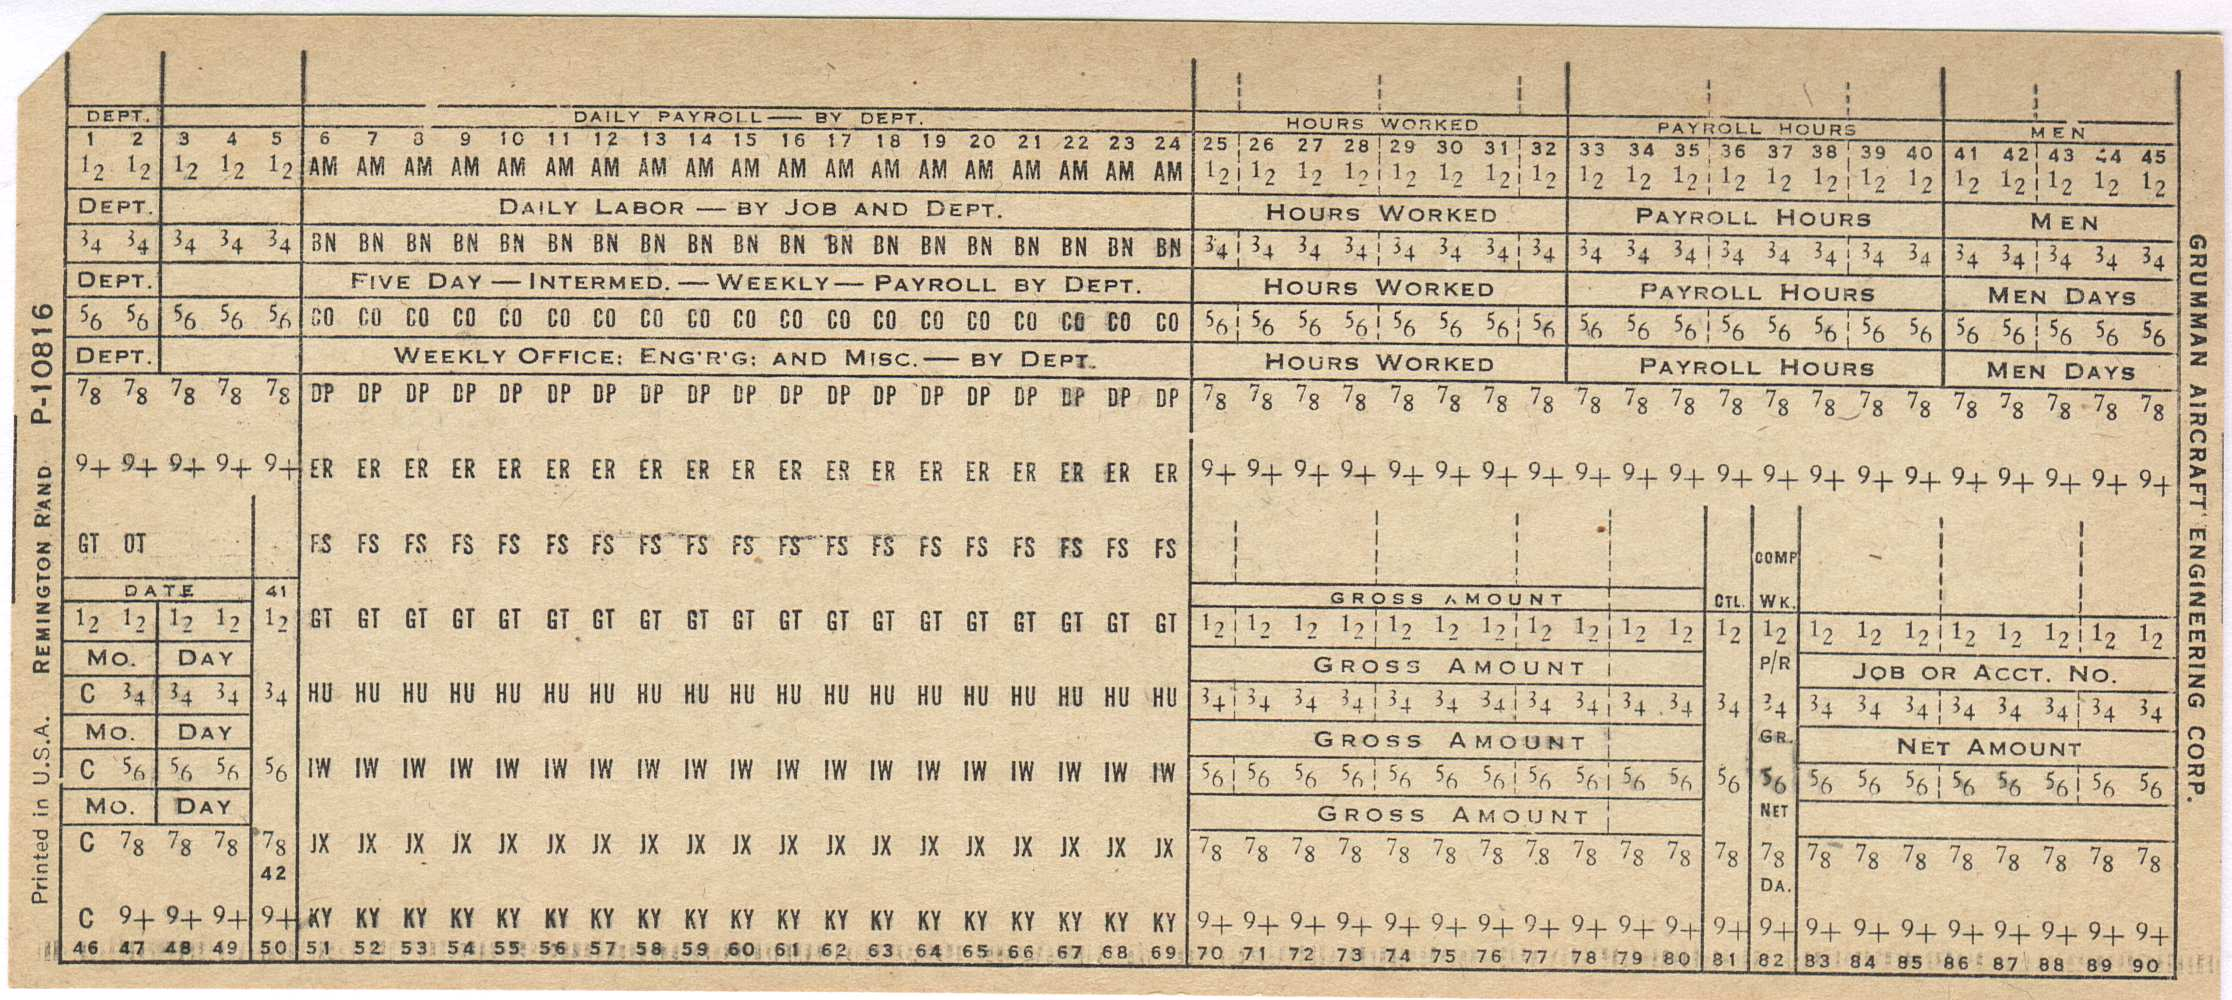 90 column punchcard